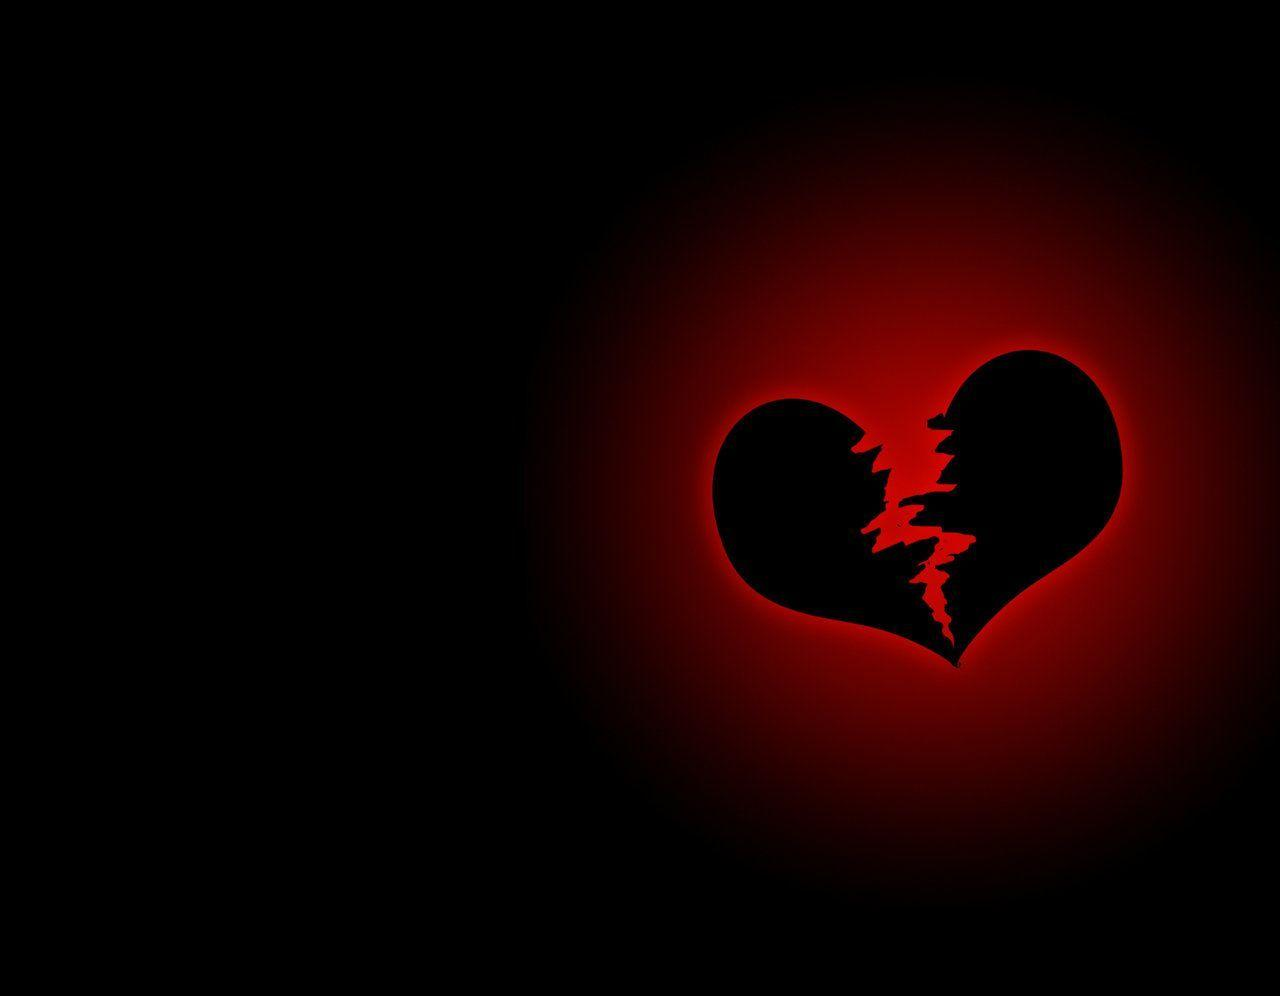 wallpaper for heartbroken | Wallpaper sportstle